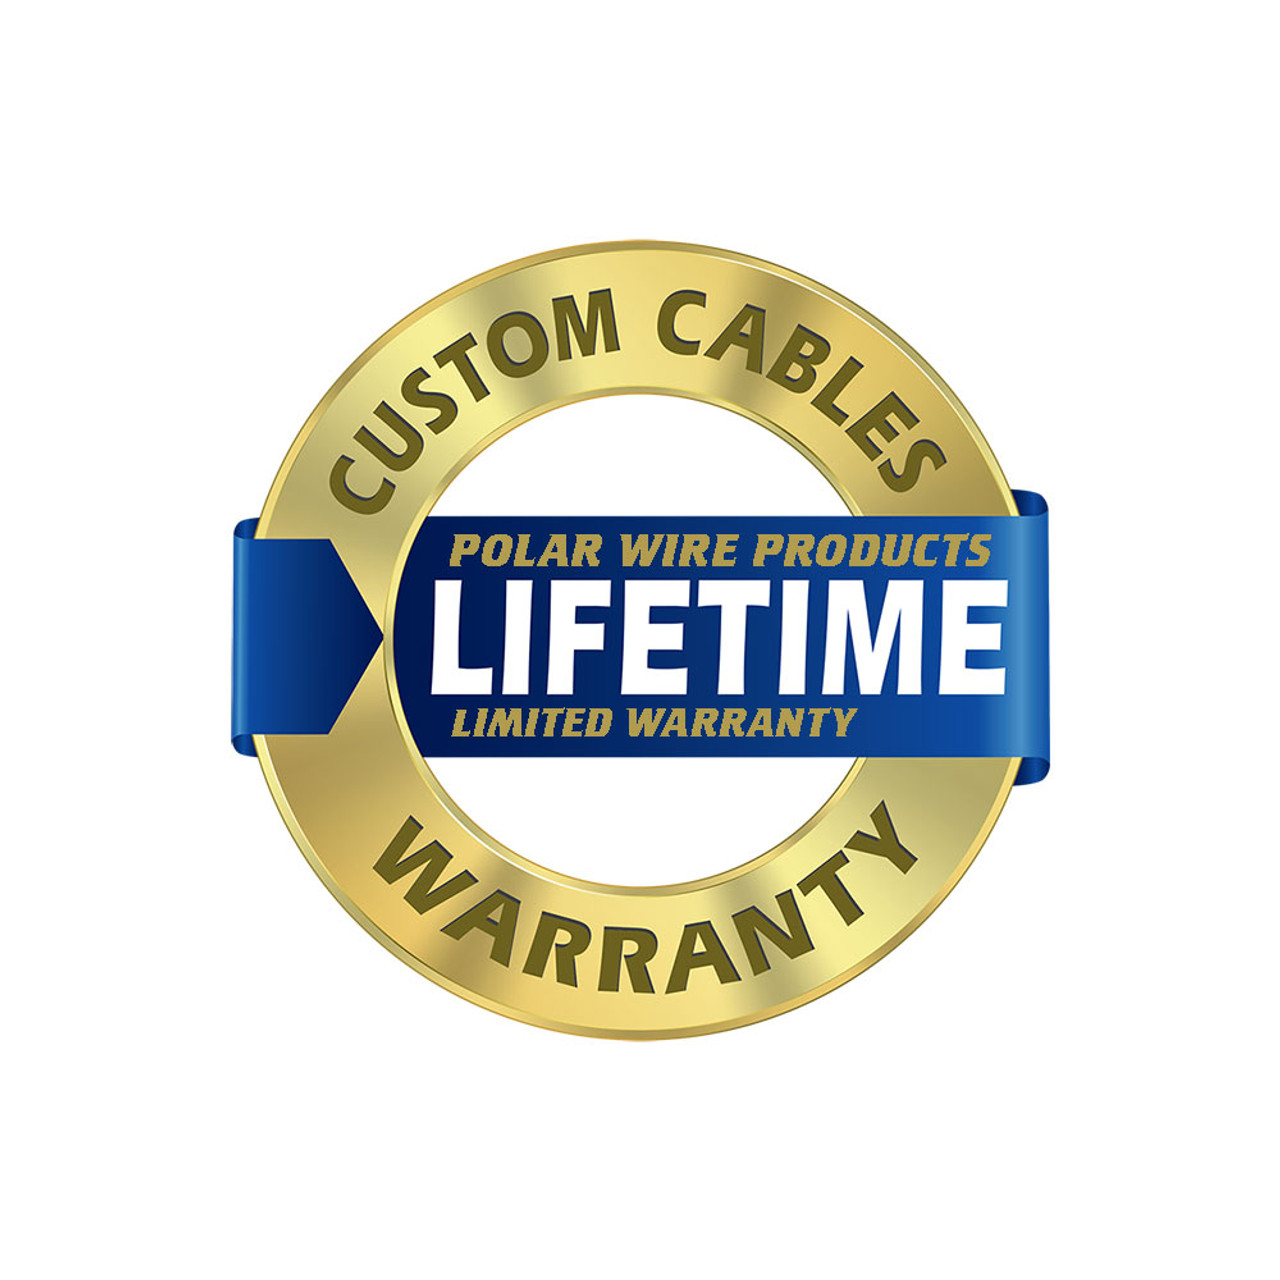 Polar Wire Arctic Superflex Blue Jumper Cable Harness modules are covered by our LIFETIME limited warranty!